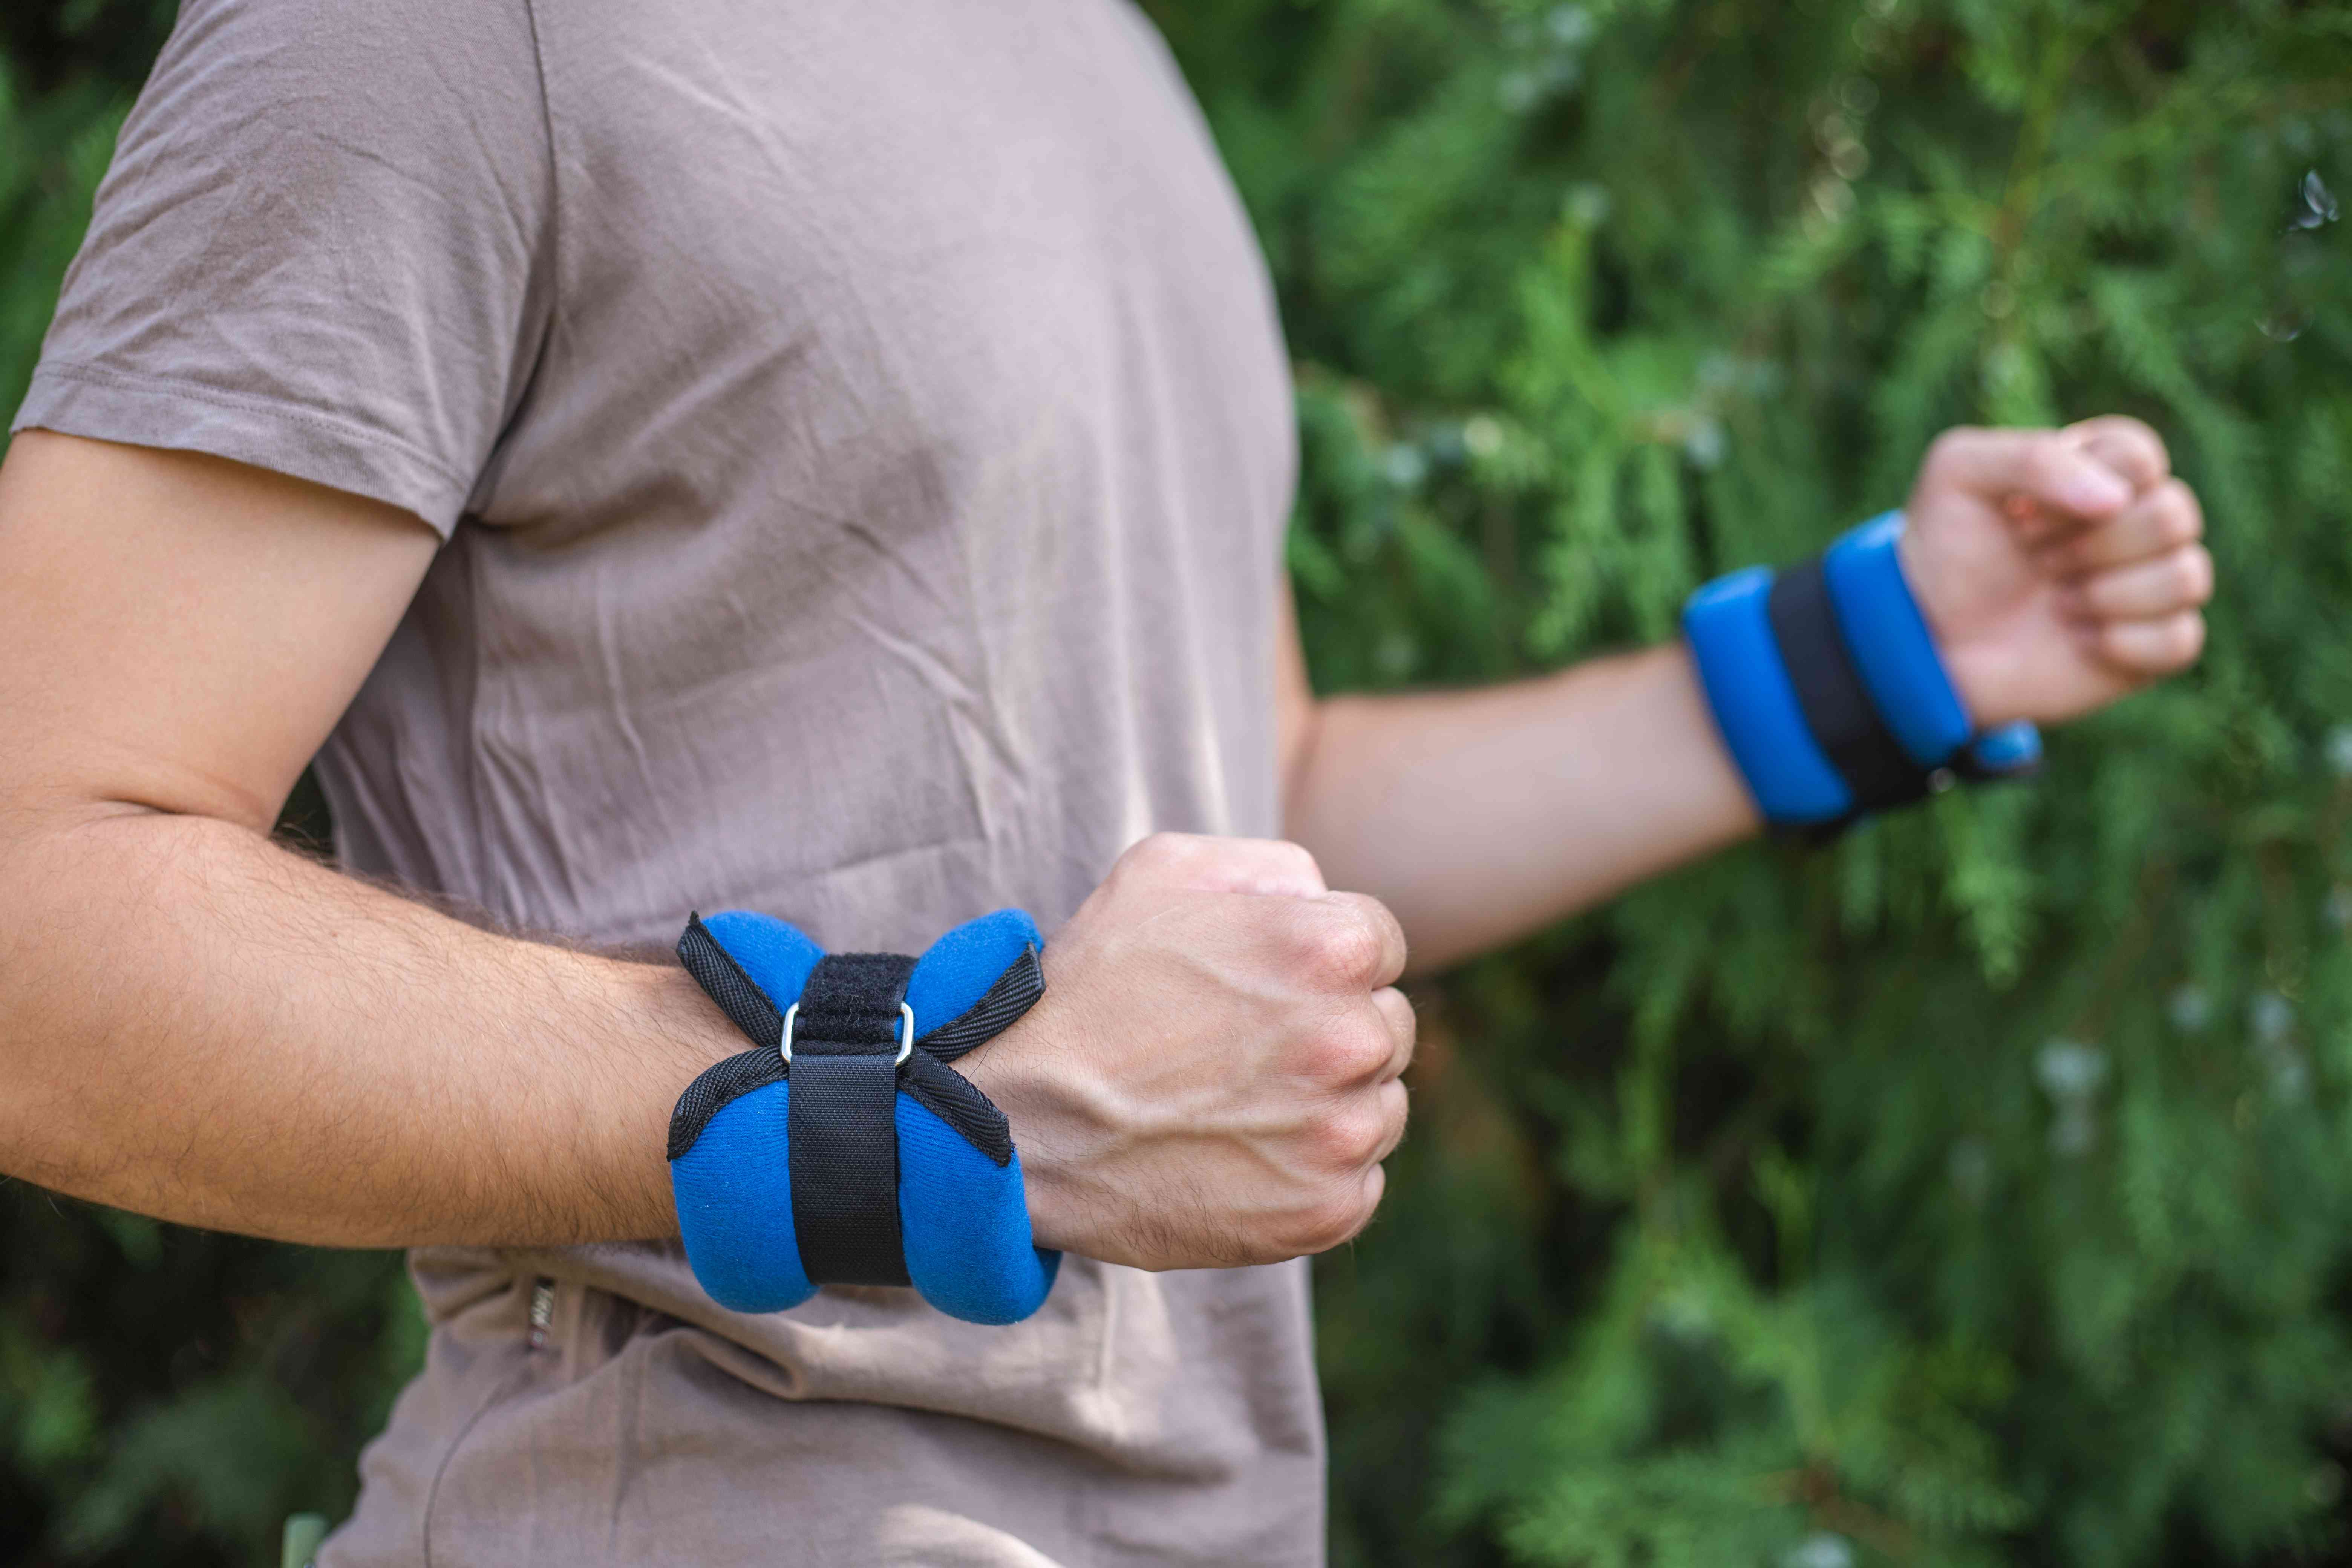 man in t-shirt wears blue velcro-strapped arm weights while walking outside